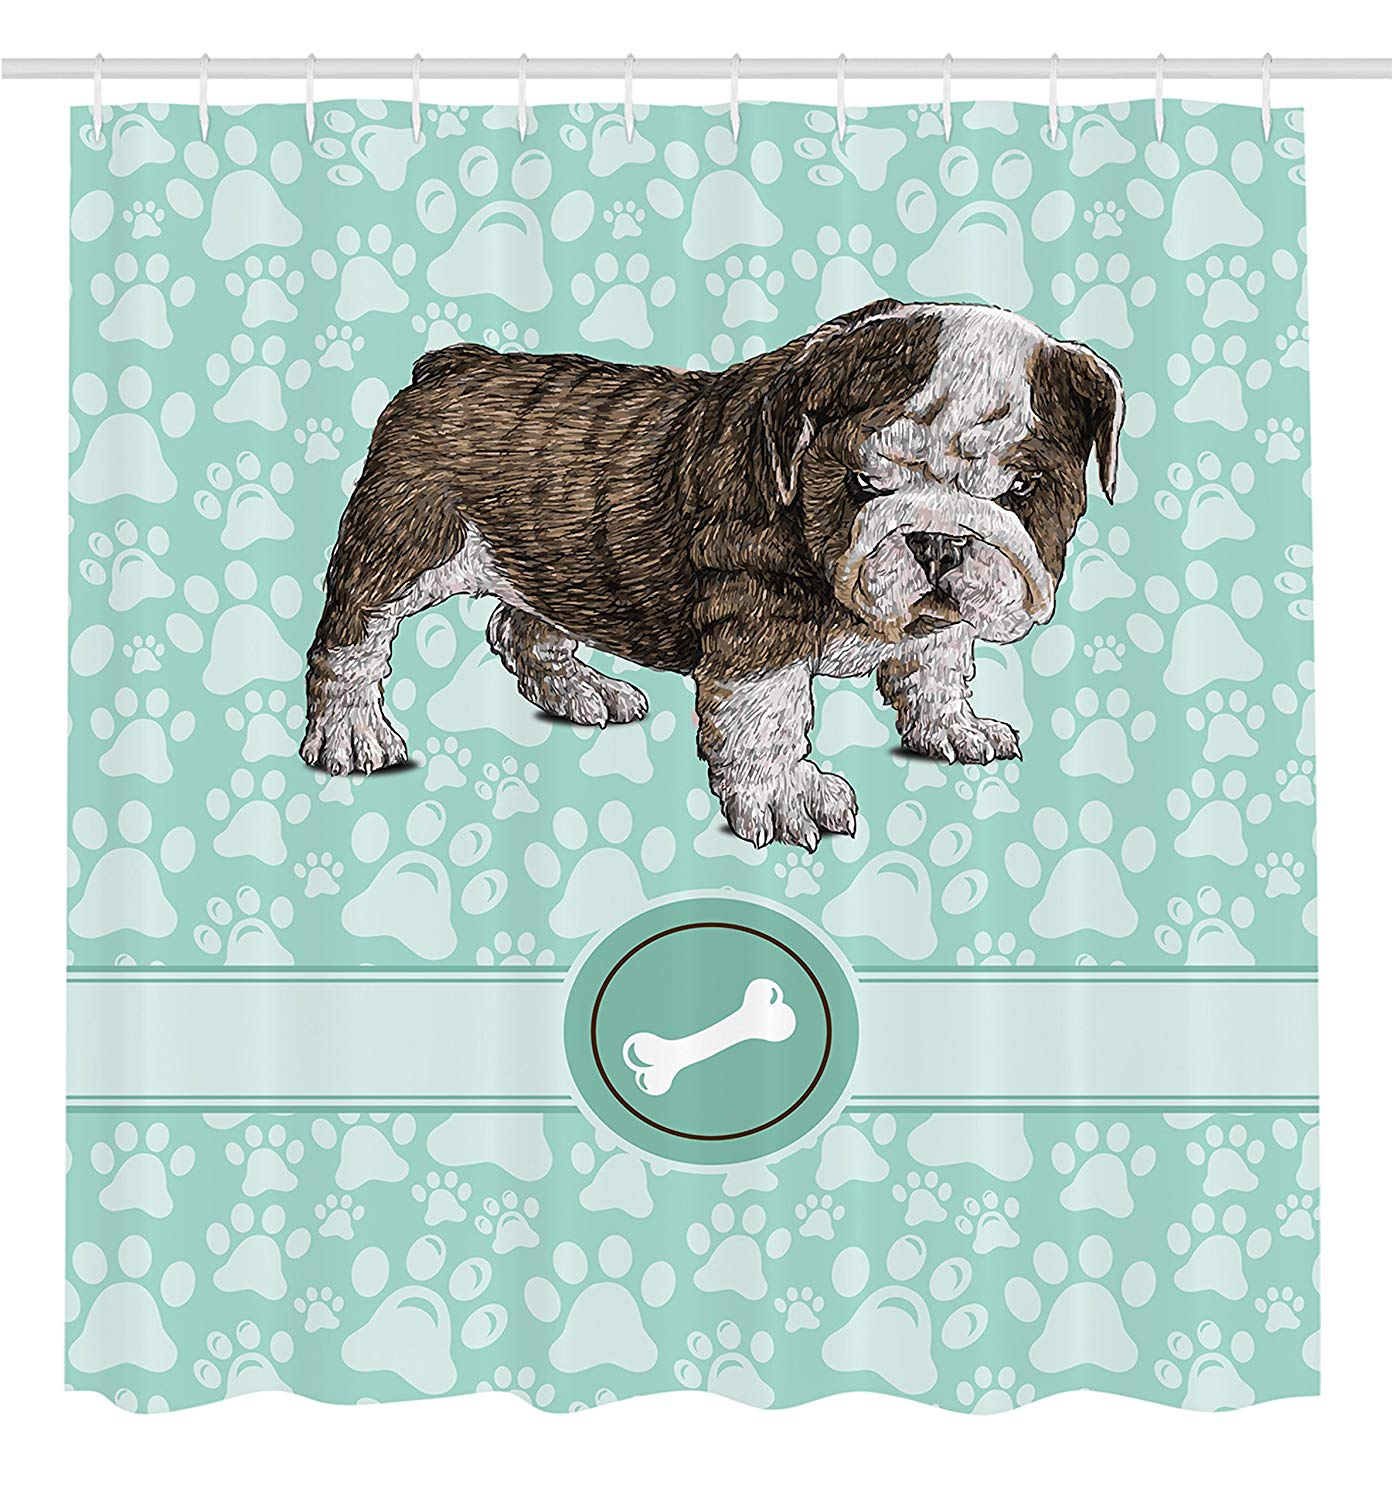 Dog Shower Curtain Animal Bulldog Apartment Adorable Purebred Cute Furry English Puppy Doggy Friendly Pet Owner Art Prints Dogs image